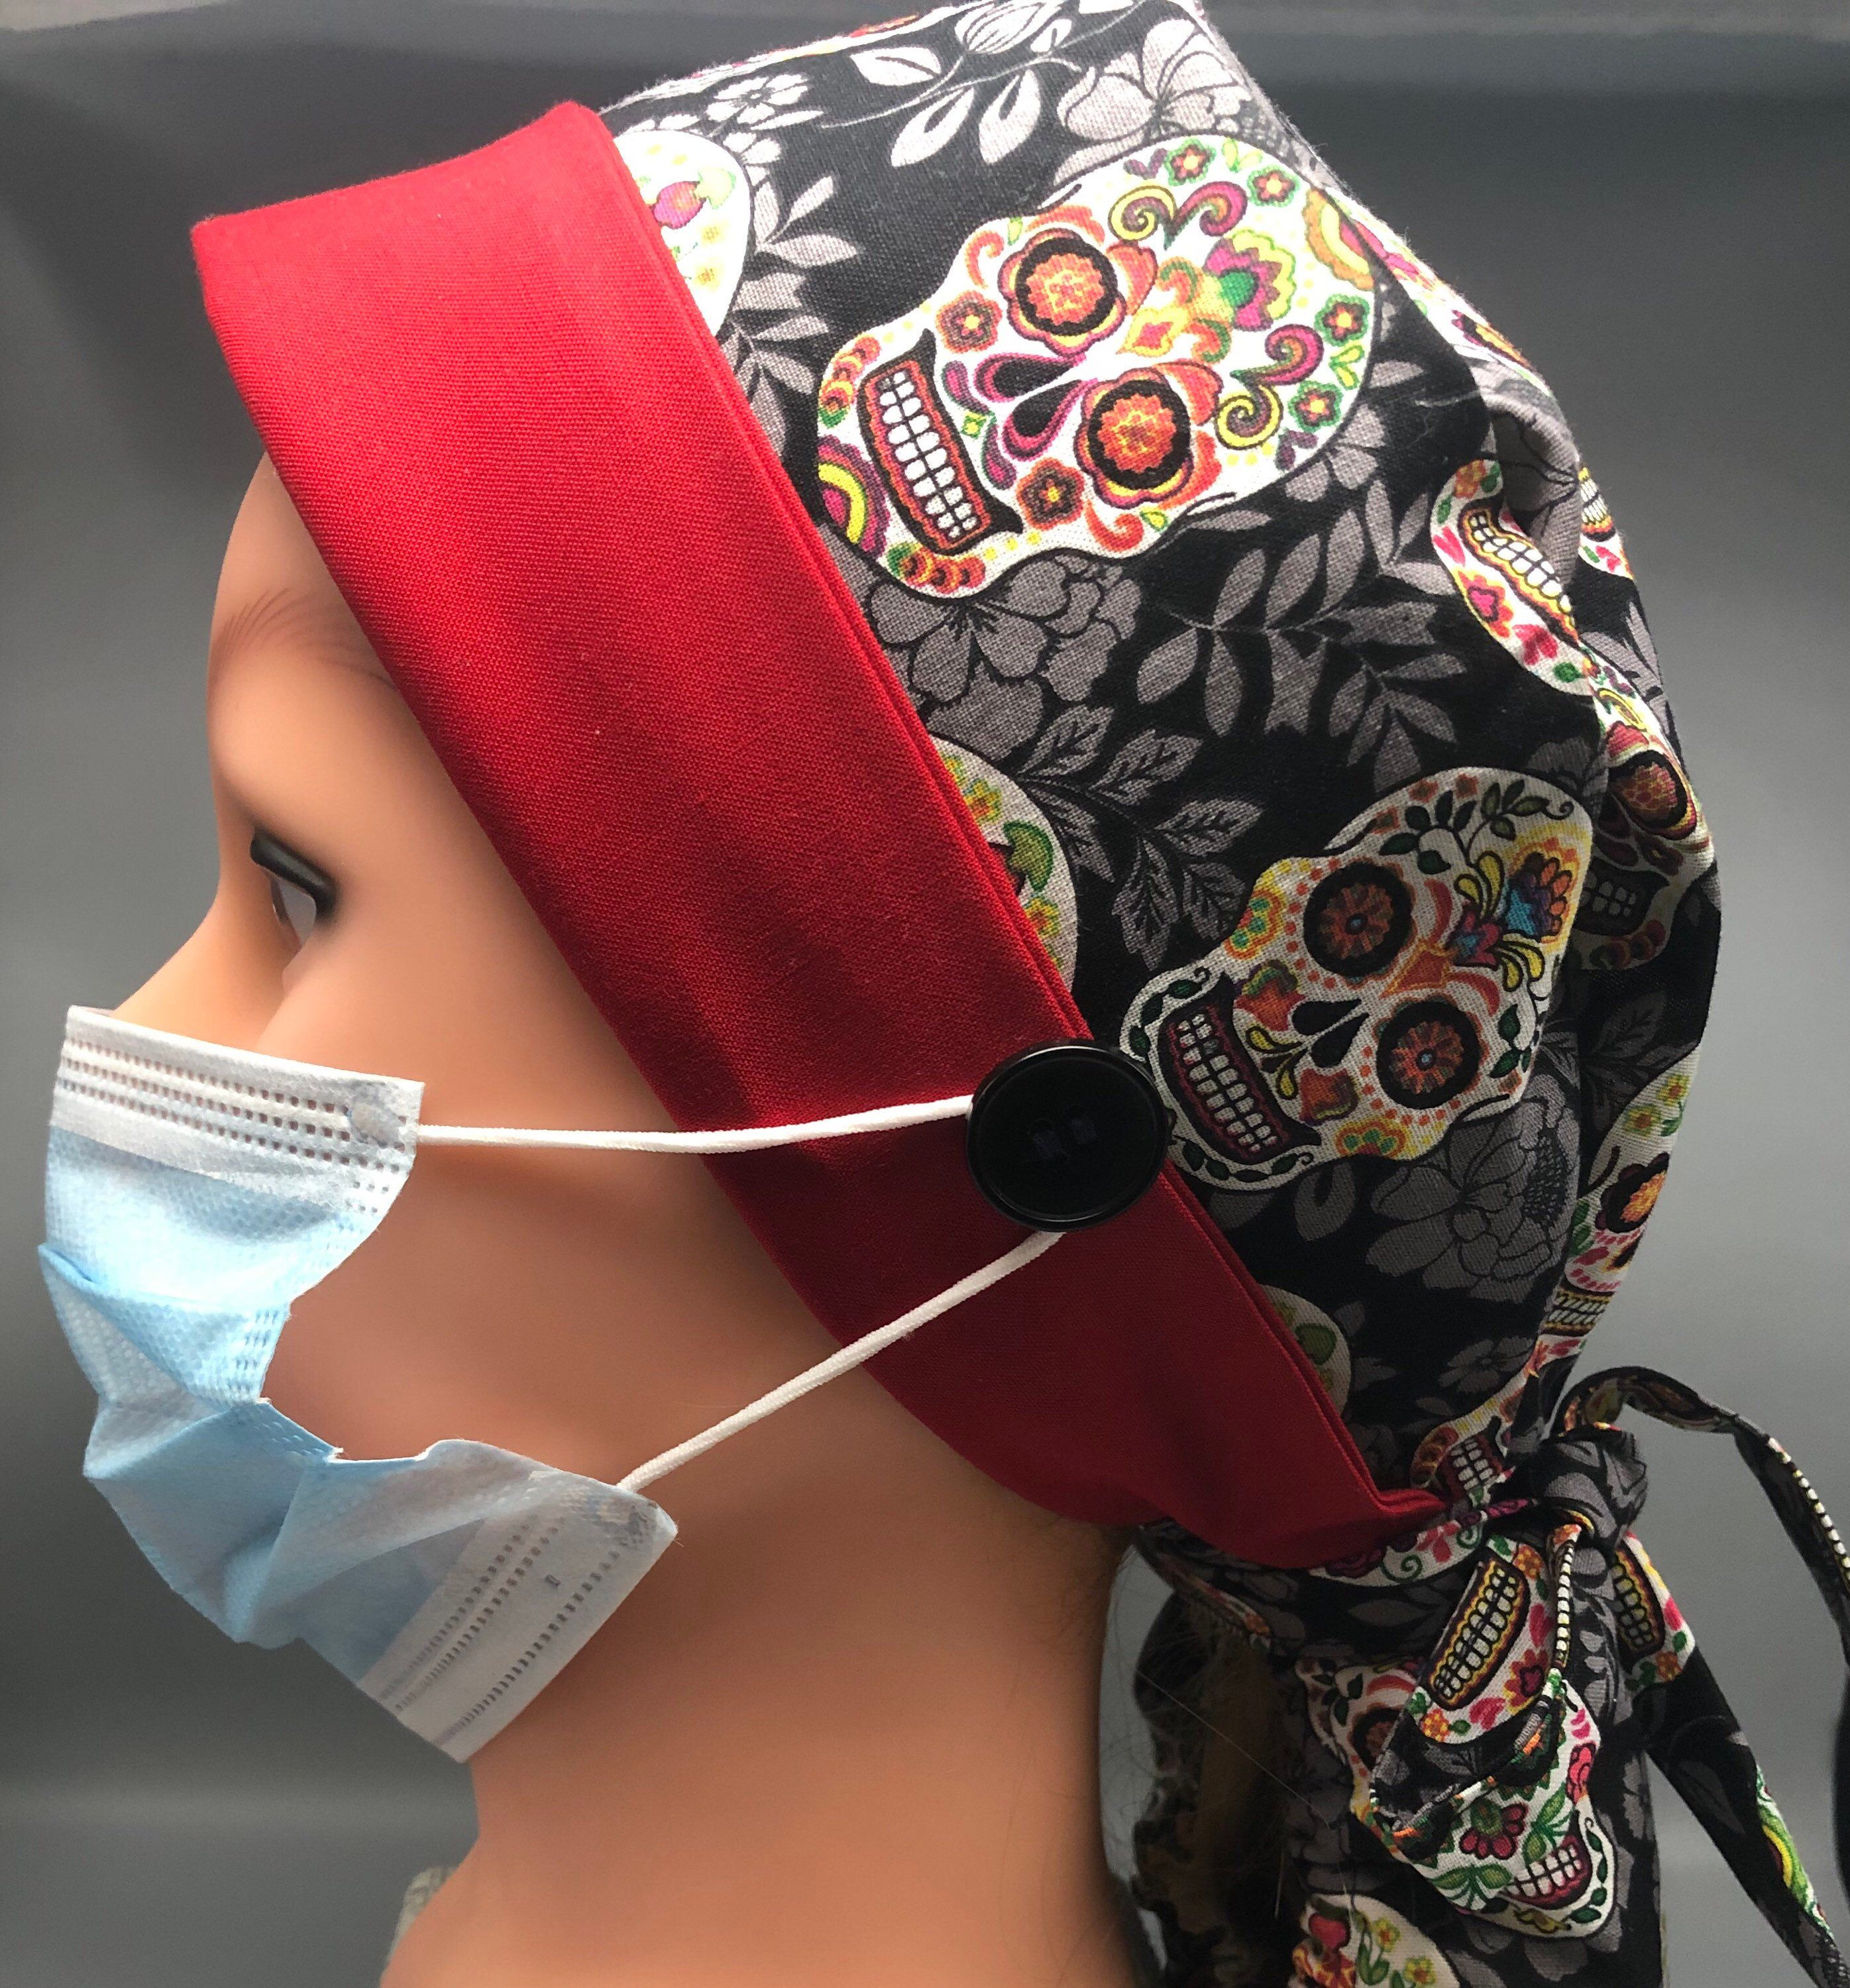 Sketched green floral scrub cap for long hair short hair bun scrub cap  women scrubhat with ties Gift wrap available. Ship today